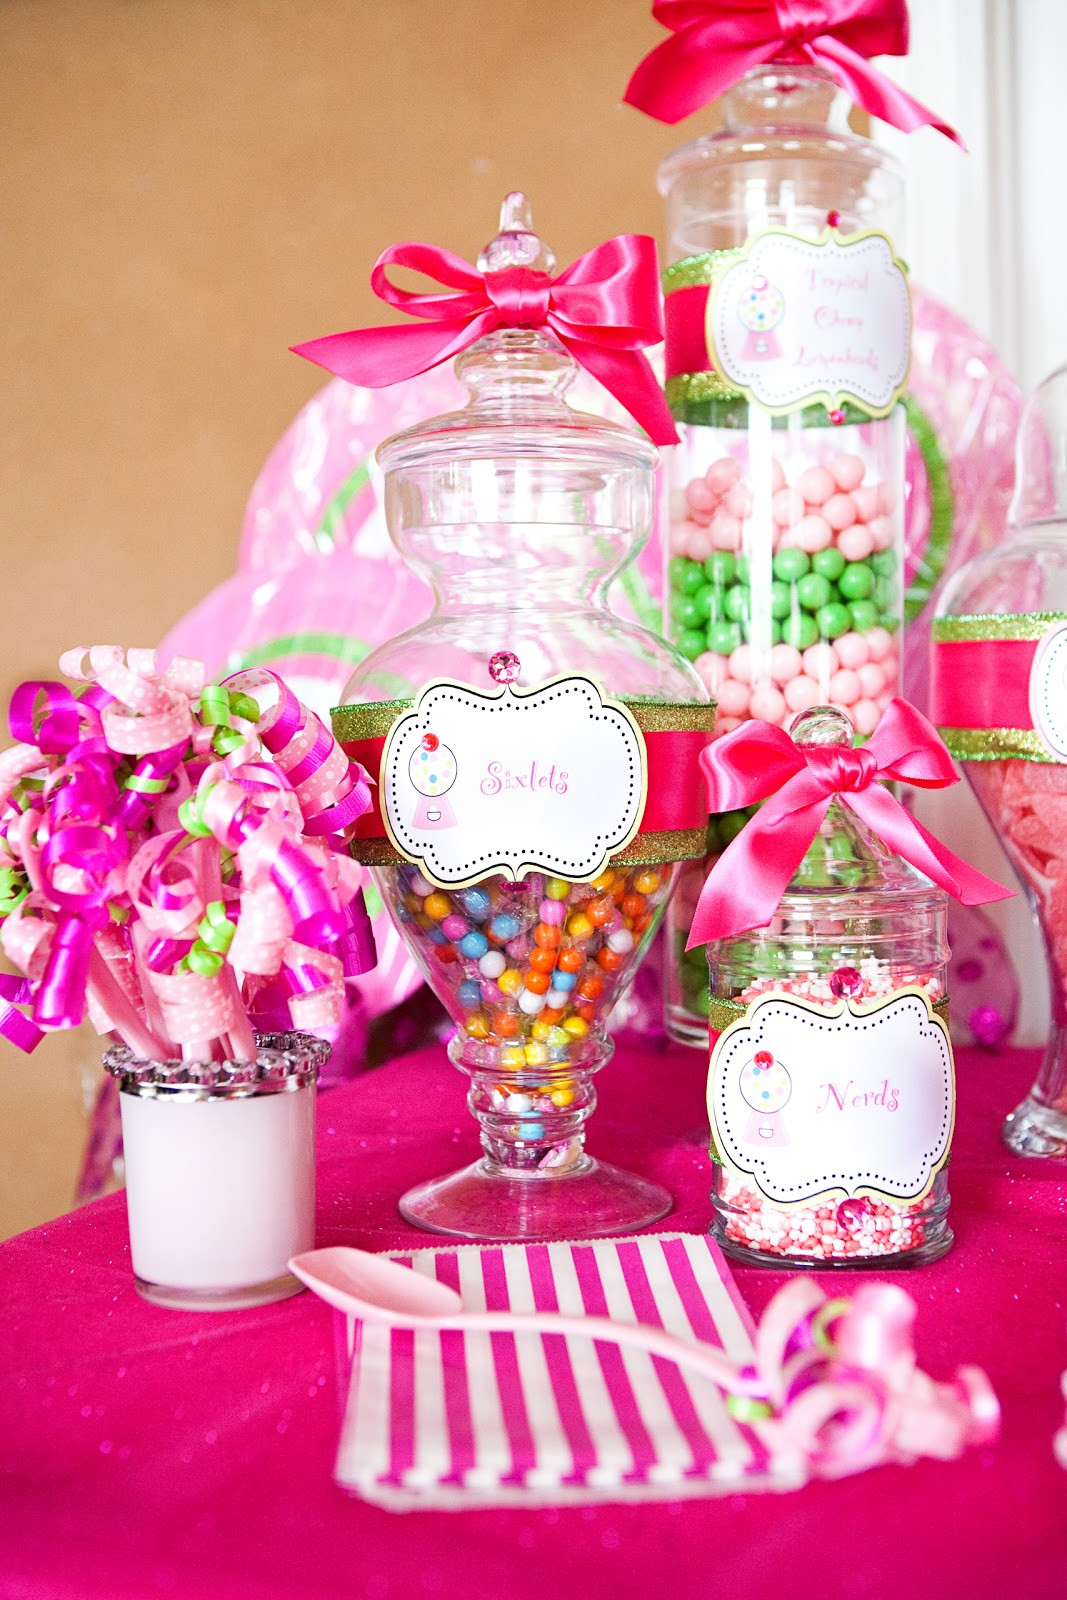 Best ideas about Girls Birthday Party Decorations . Save or Pin The TomKat Studio Sweet Customers Pink Sweet Shoppe Now.